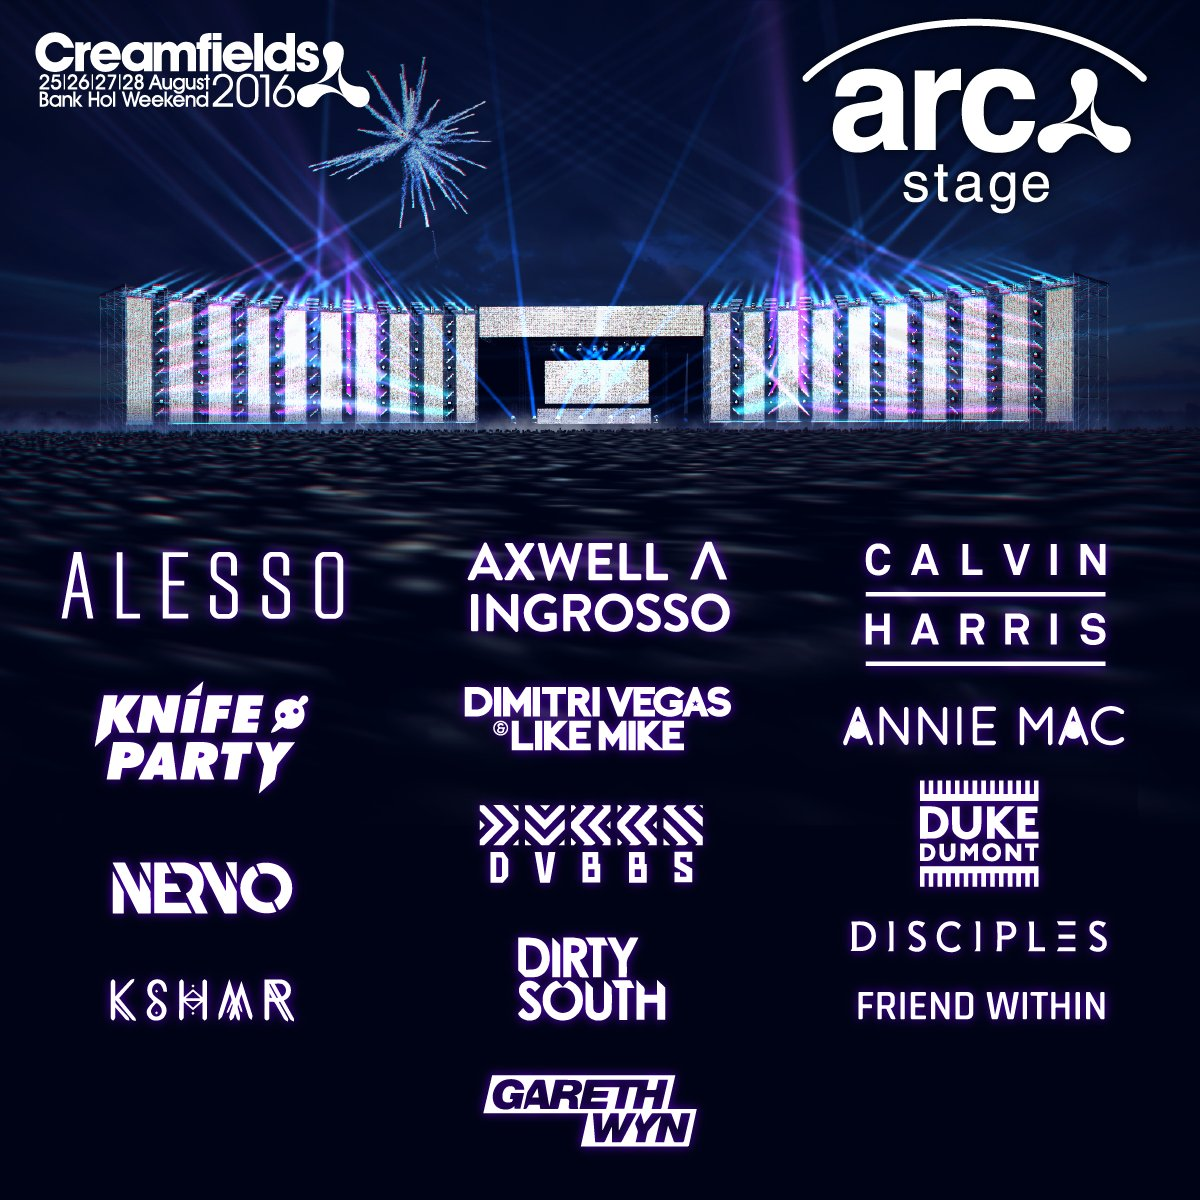 Arc Stage Lineup